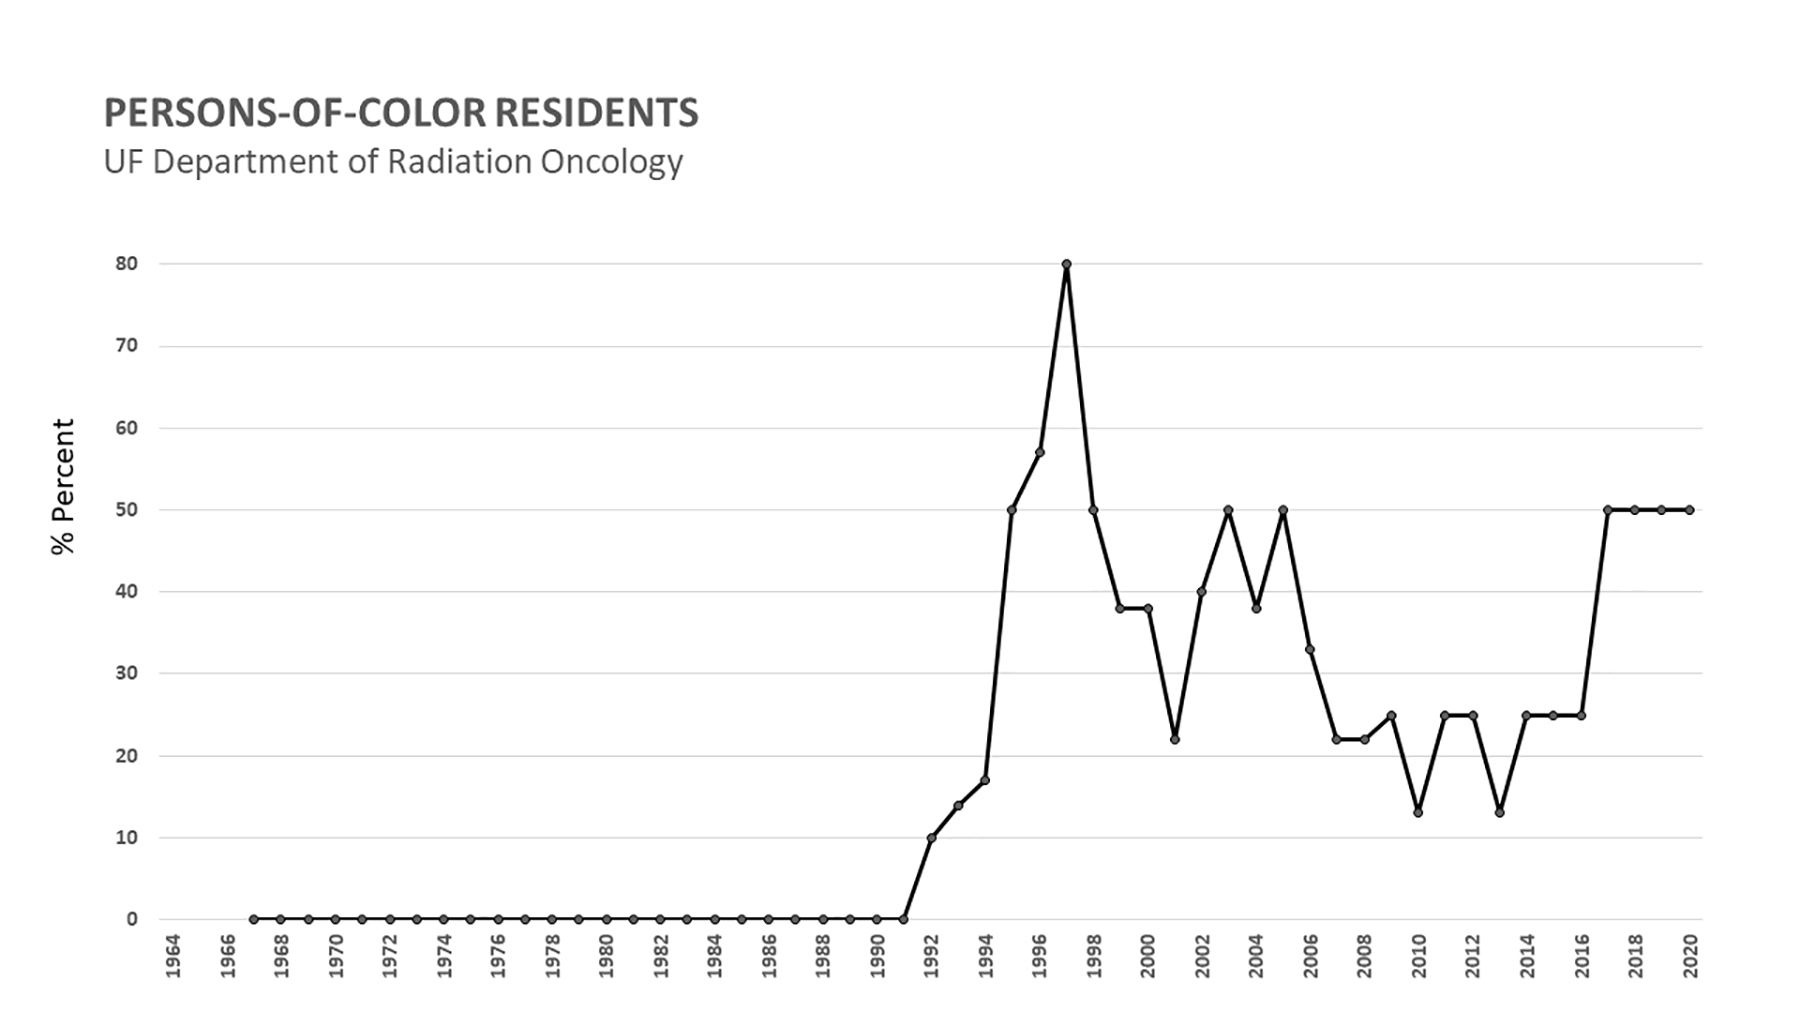 Percentage of University of Florida radiation oncology resident physicians that were a person of color